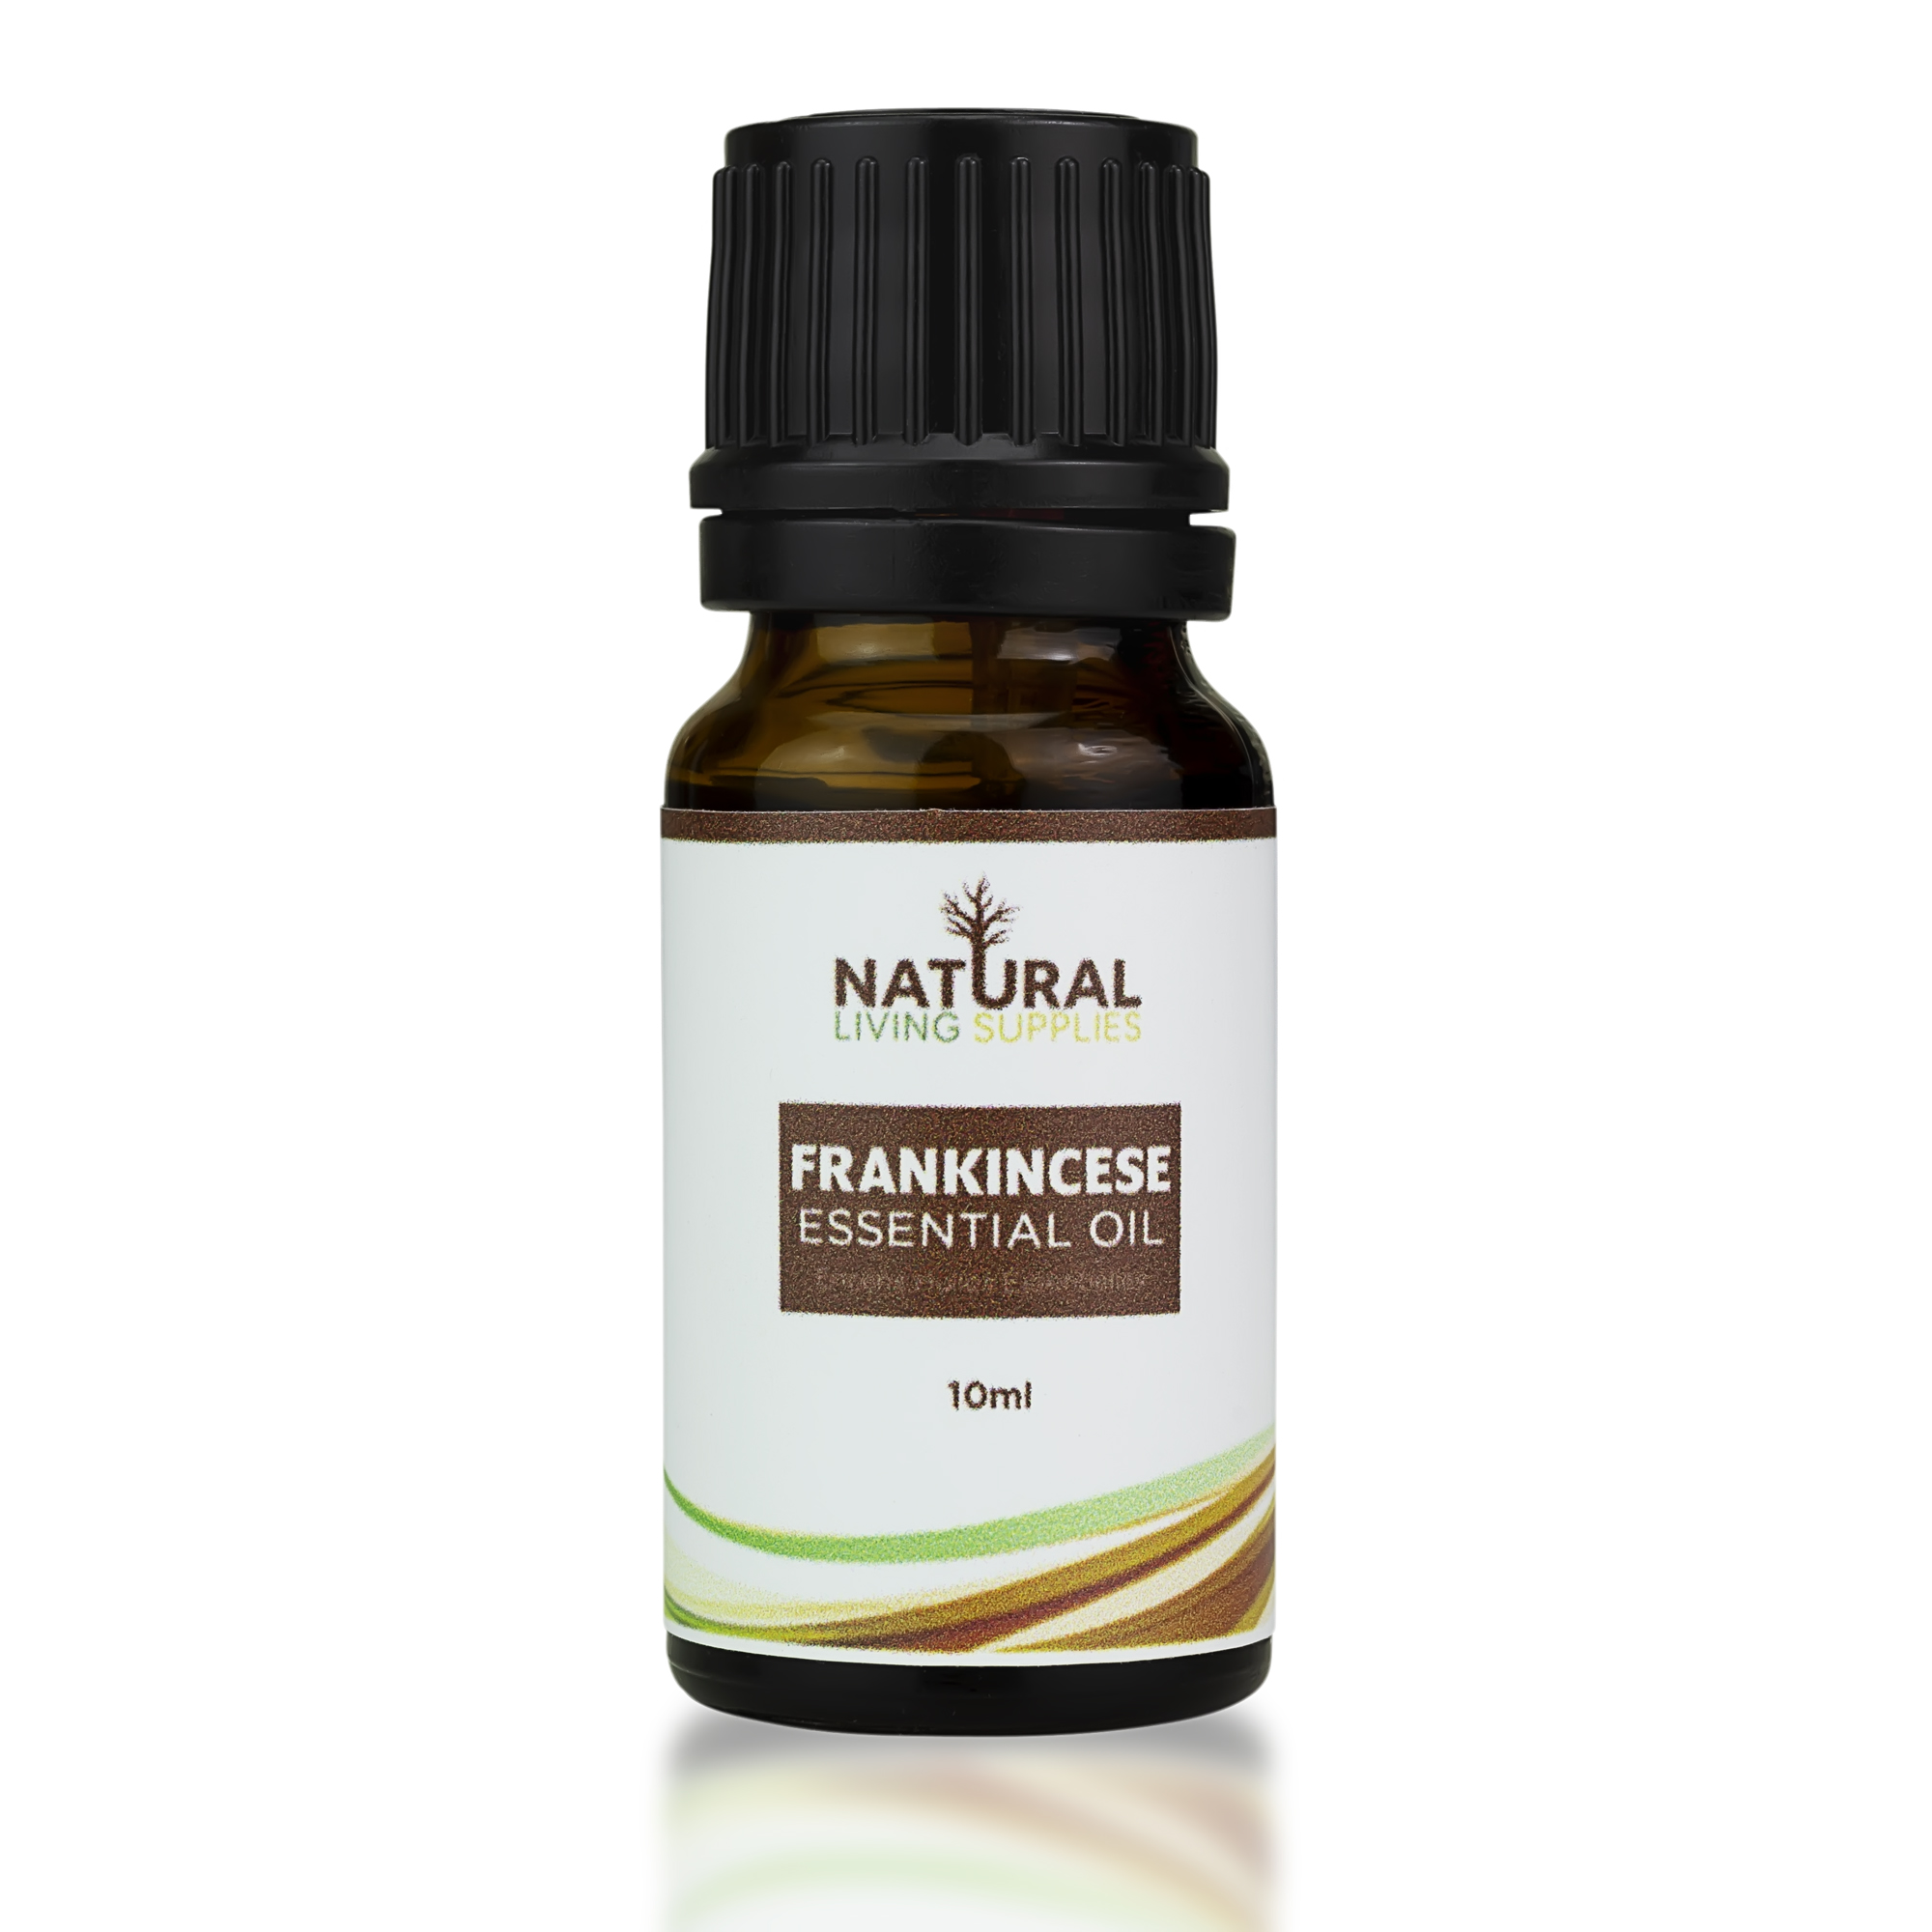 he most well known and used Frankincense of the four we offer is our Frankincense Carterii essential oil. Besides its intoxicatingly smooth, and relaxing aroma, Frankincense Carterii has a knack for charming users with its many therapeutic properties. This oil is high in alpha-pinene, and other monoterpenes, making it a great immune support. Frankincense Carterii has many benefits towards the skin, such as reducing the appearance of mature skin and scars due to its ability to repair skin cells. The respiratory system can also benefit from Frankincense, as it aids illnesses and breathing. The aroma of Frankincense Carterii is what most people are familiar with, and is commonly used in making natural incense and resin burning. It has a deep, rich, grounding aroma which touts the ability to quiet the mind, support focus, and encourage tranquility